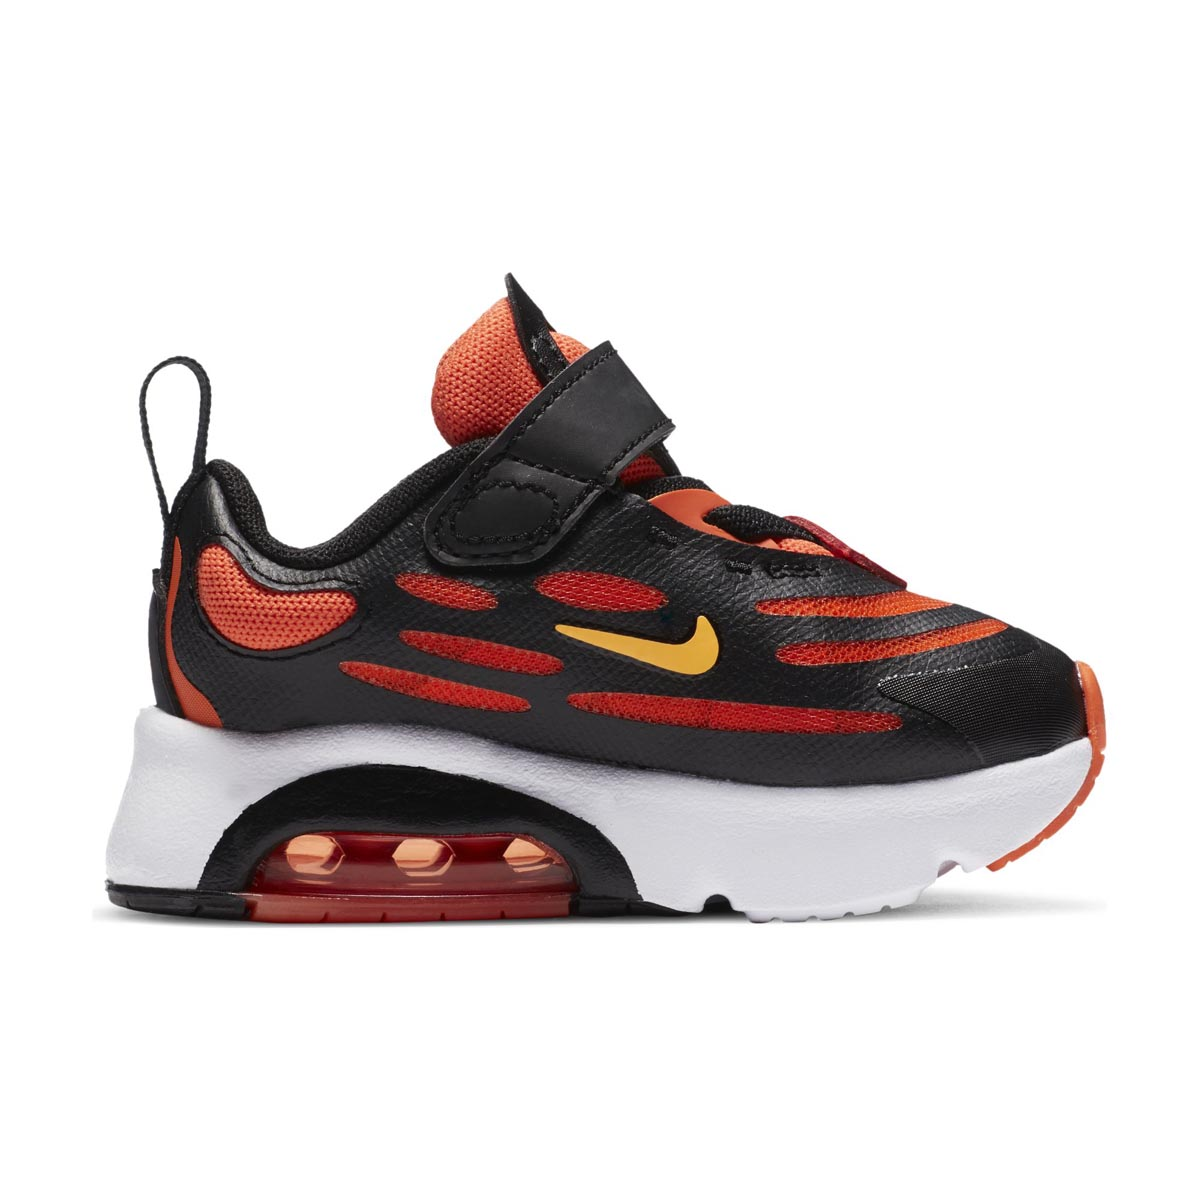 Toddler Nike Air Max Exosense